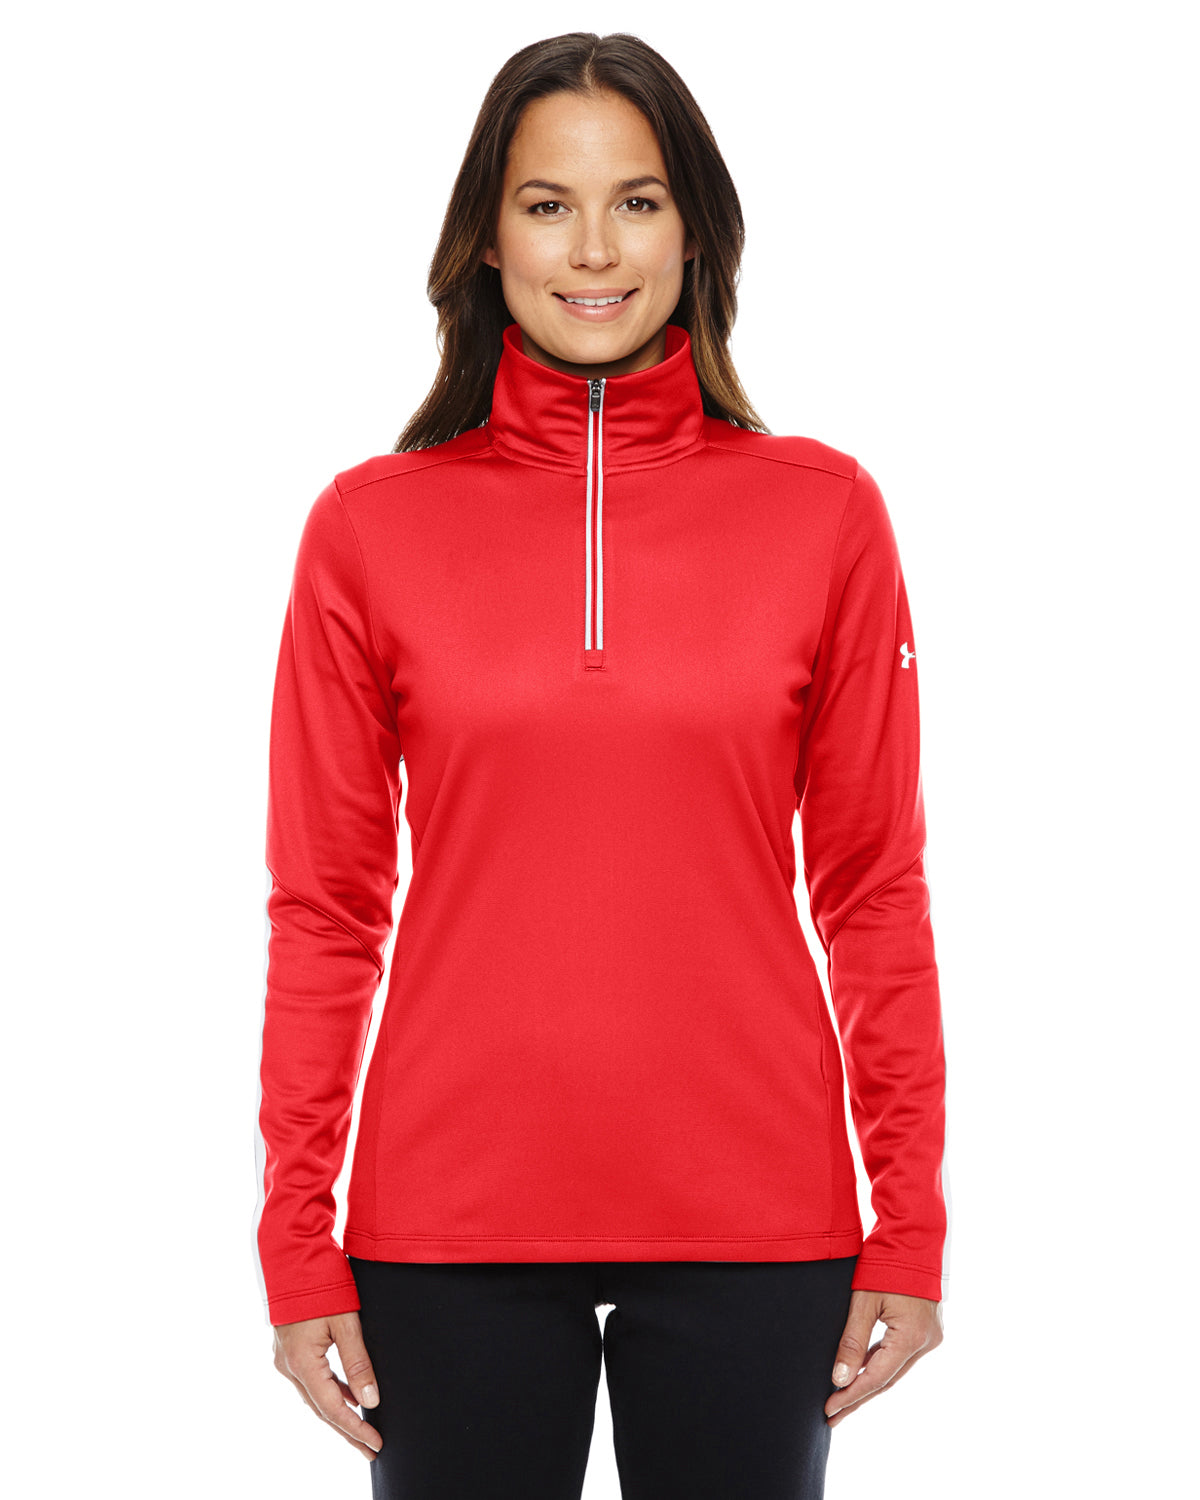 UNDER ARMOUR LADIES' QUALIFIER 1/4 ZIP